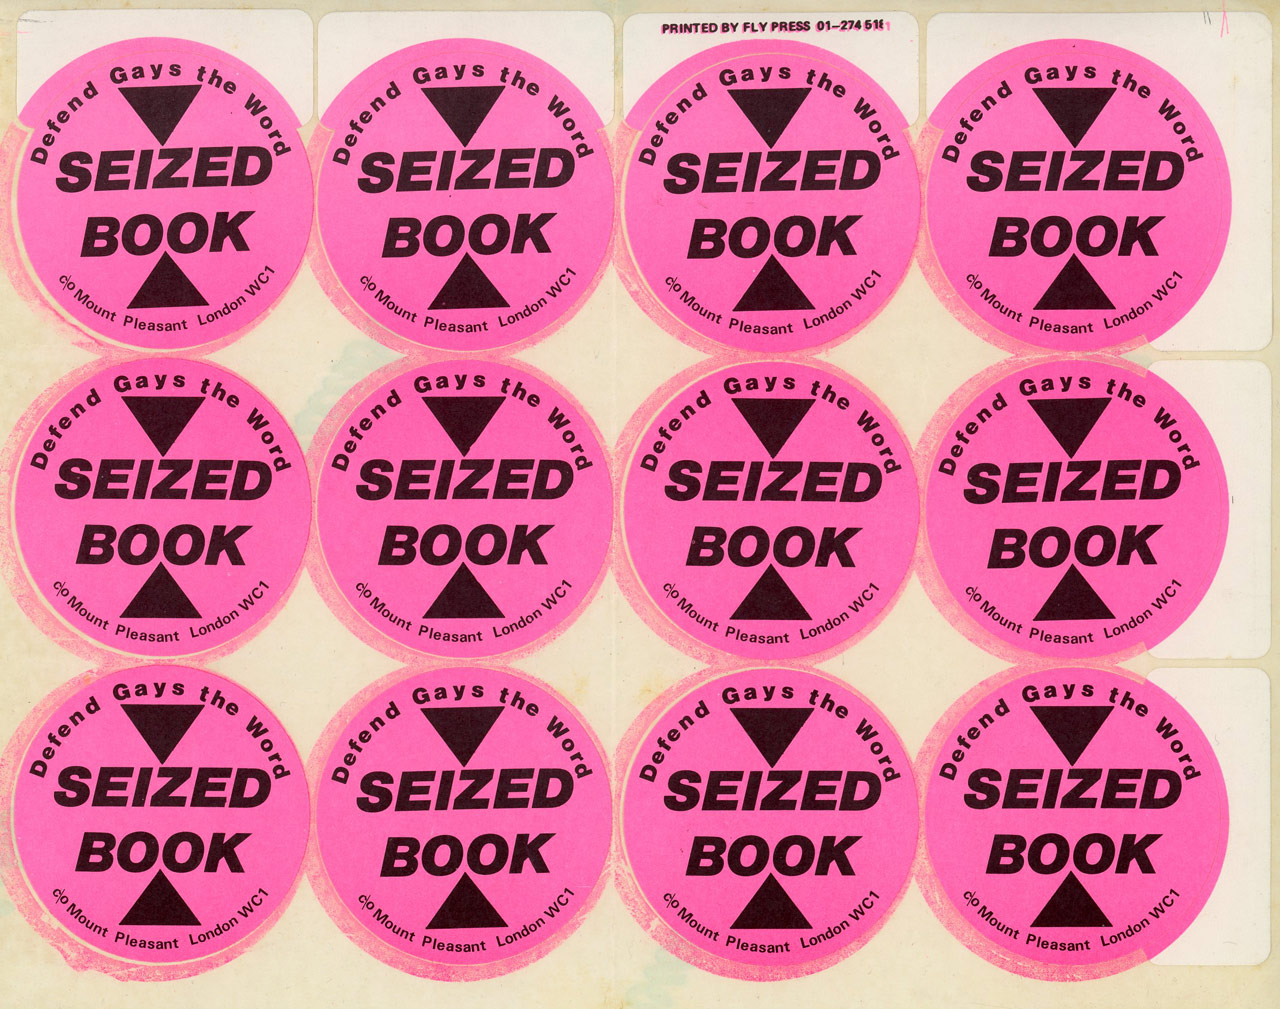 Seized Book stickers for Gay's the Word, 1985